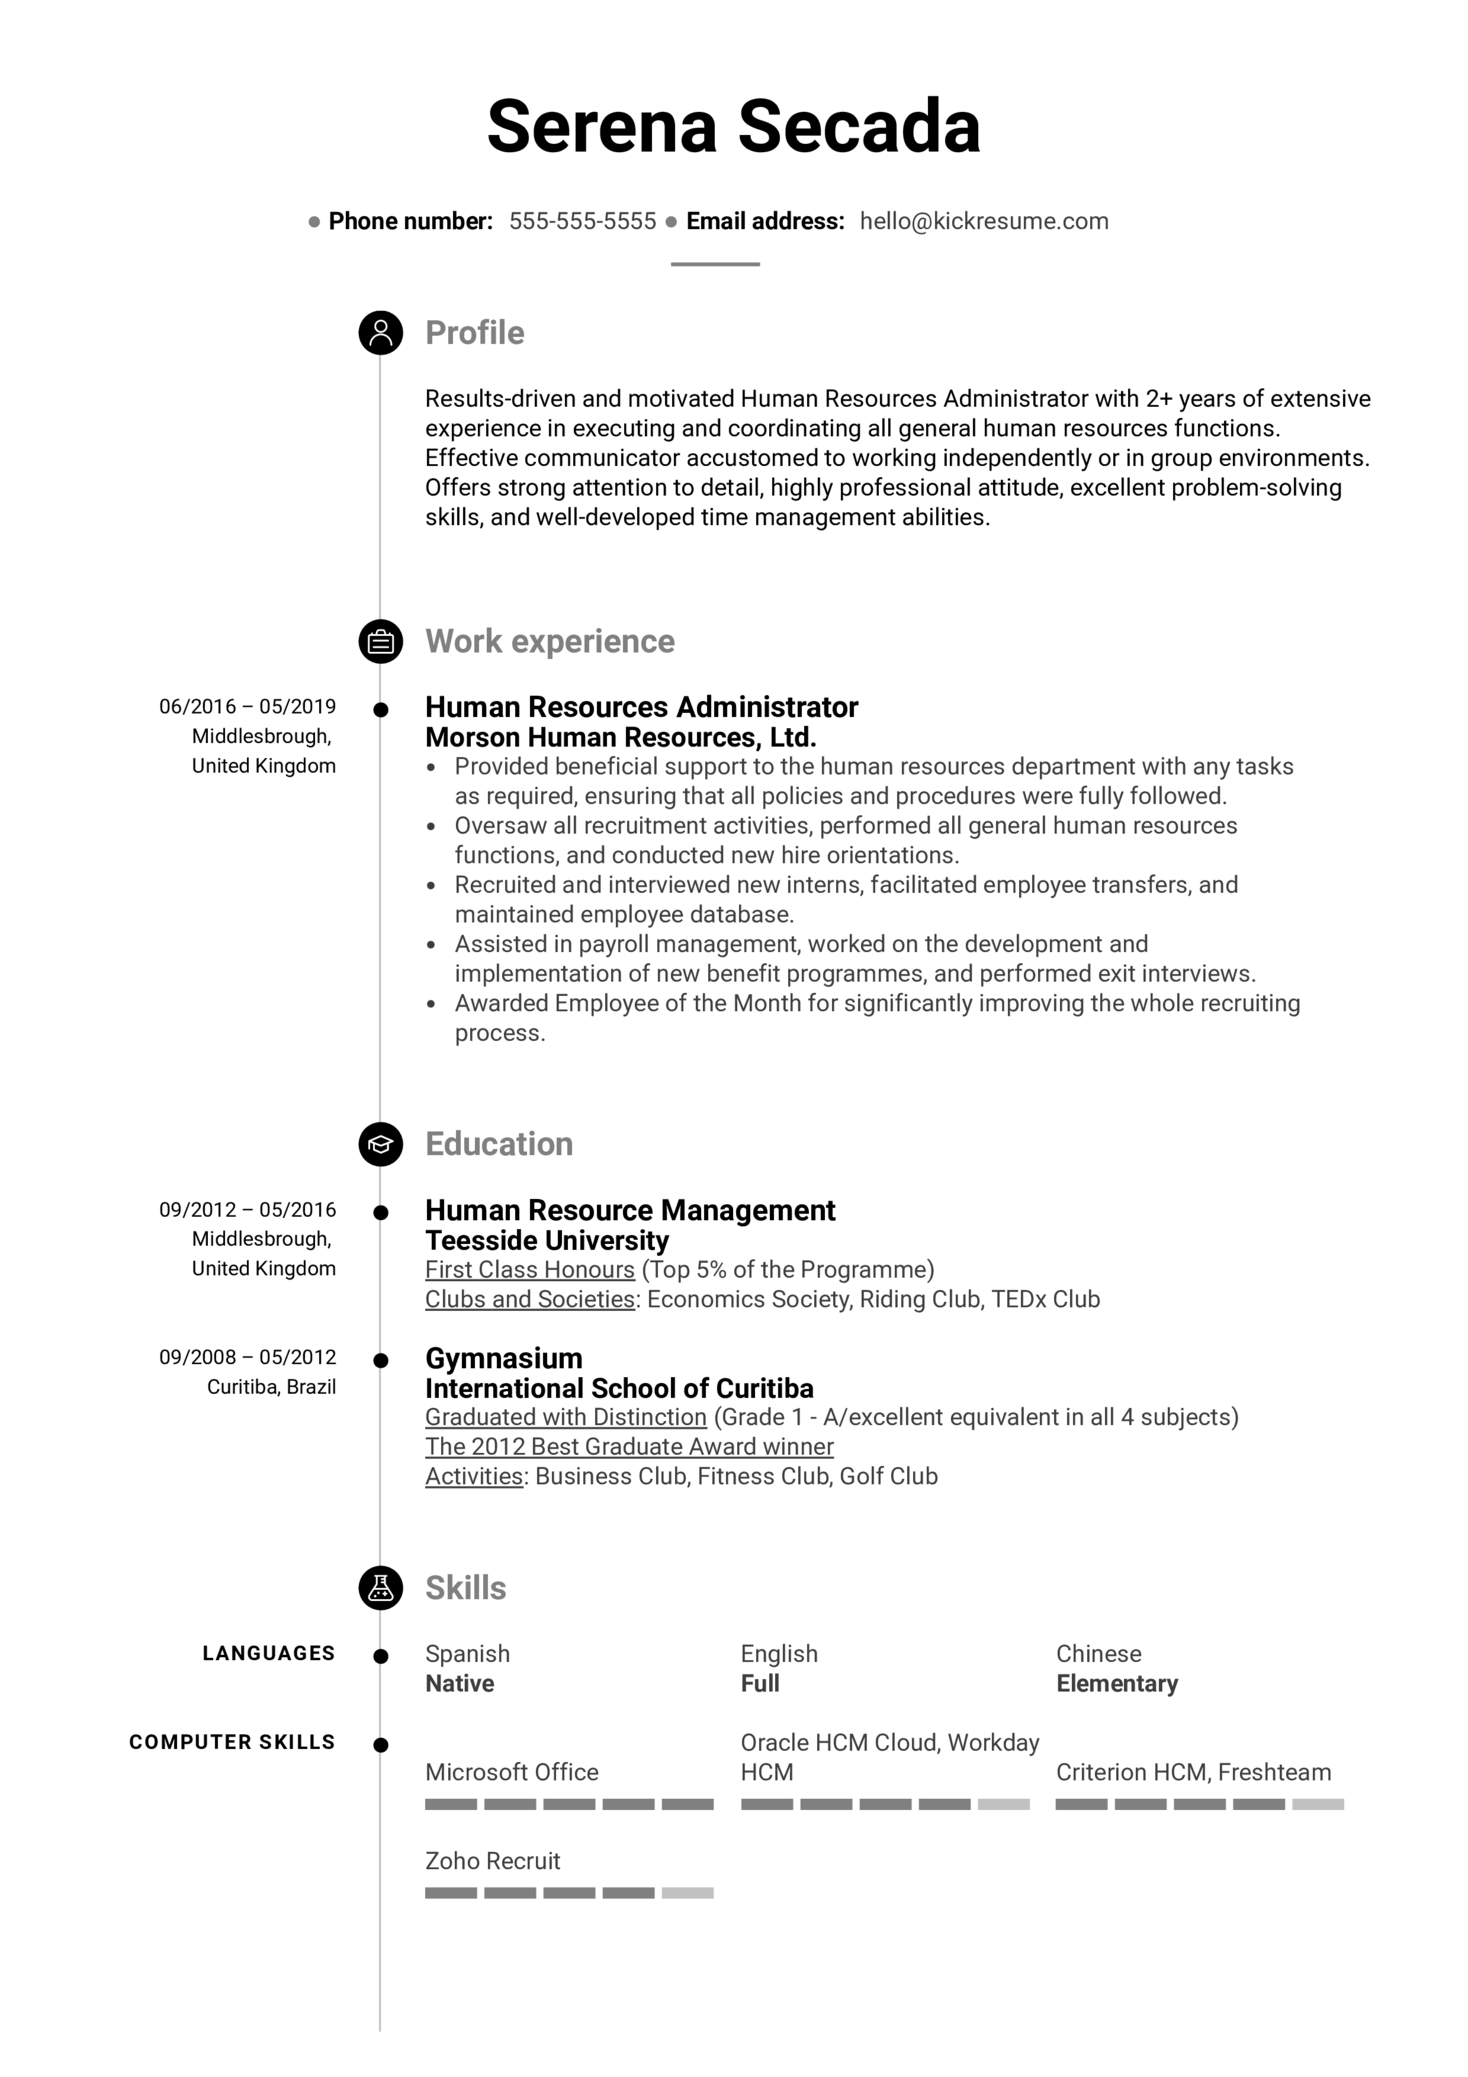 Human Resources Administrator Resume Example (parte 1)